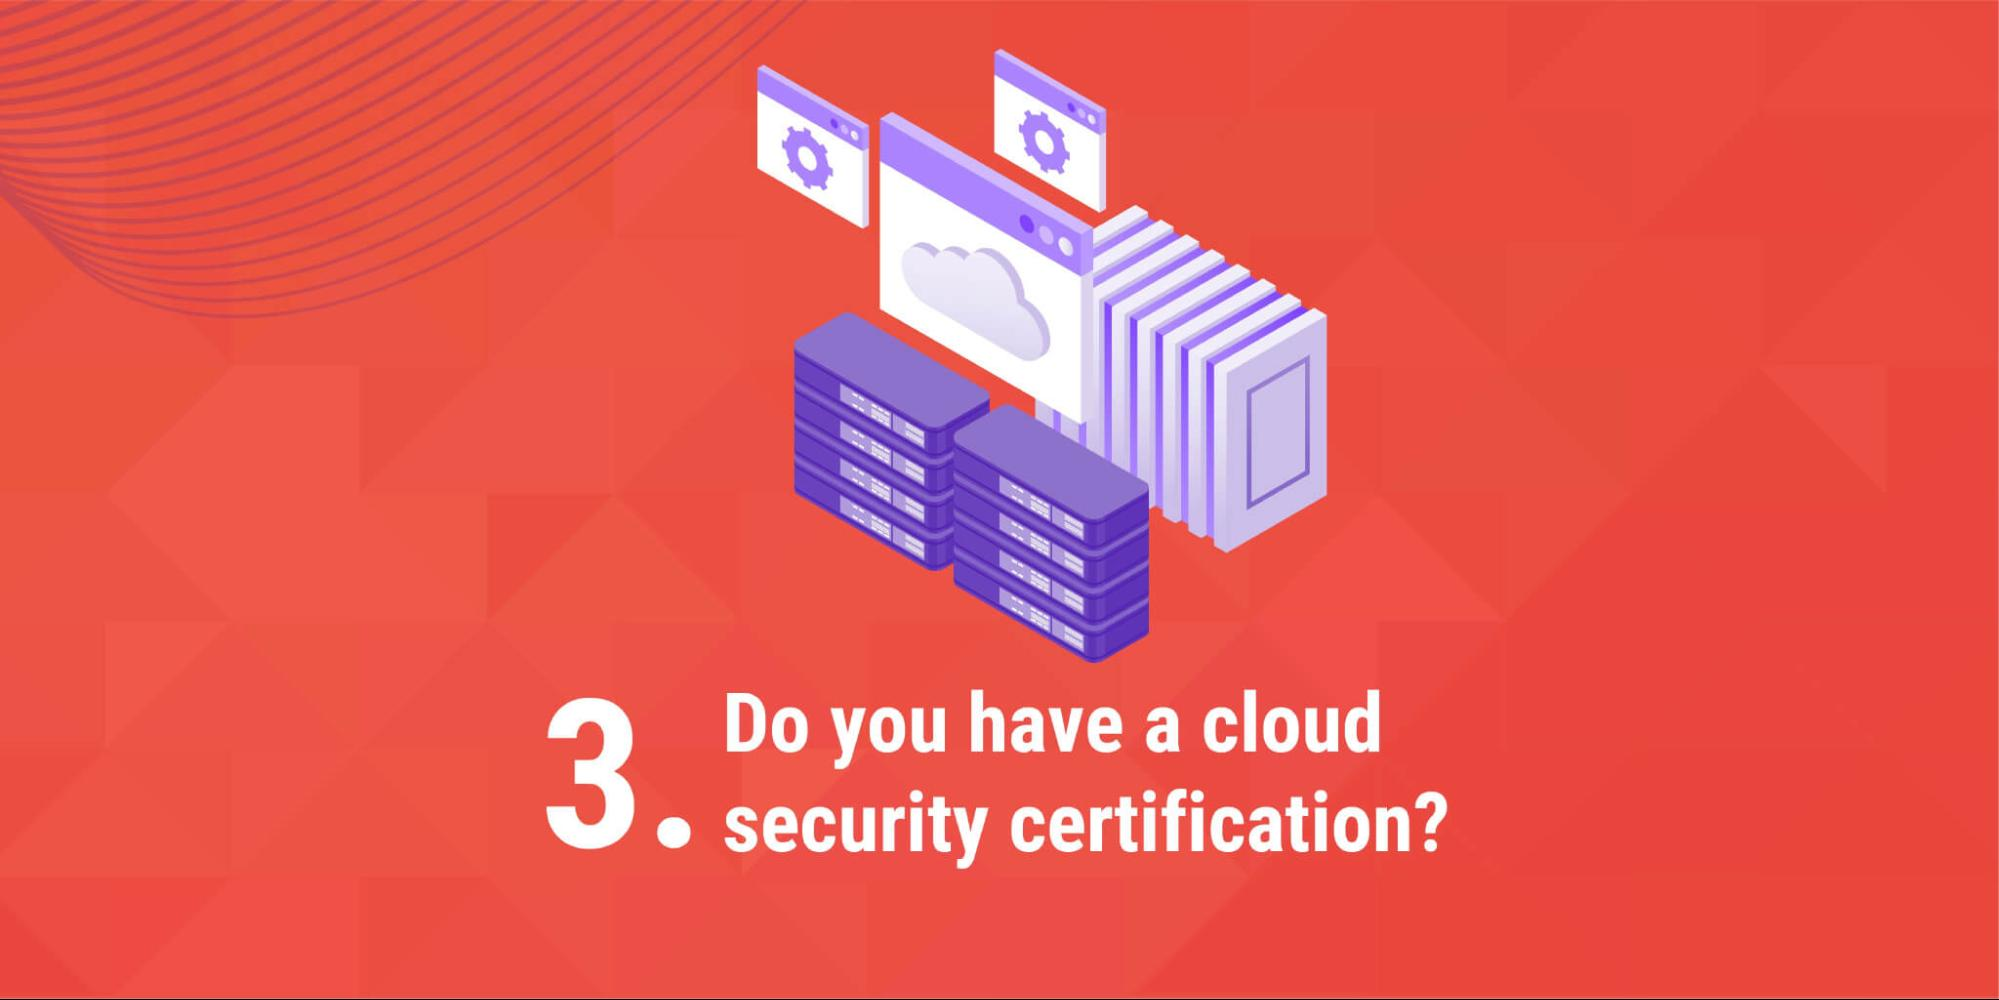 3. Do you have a cloud security certification?